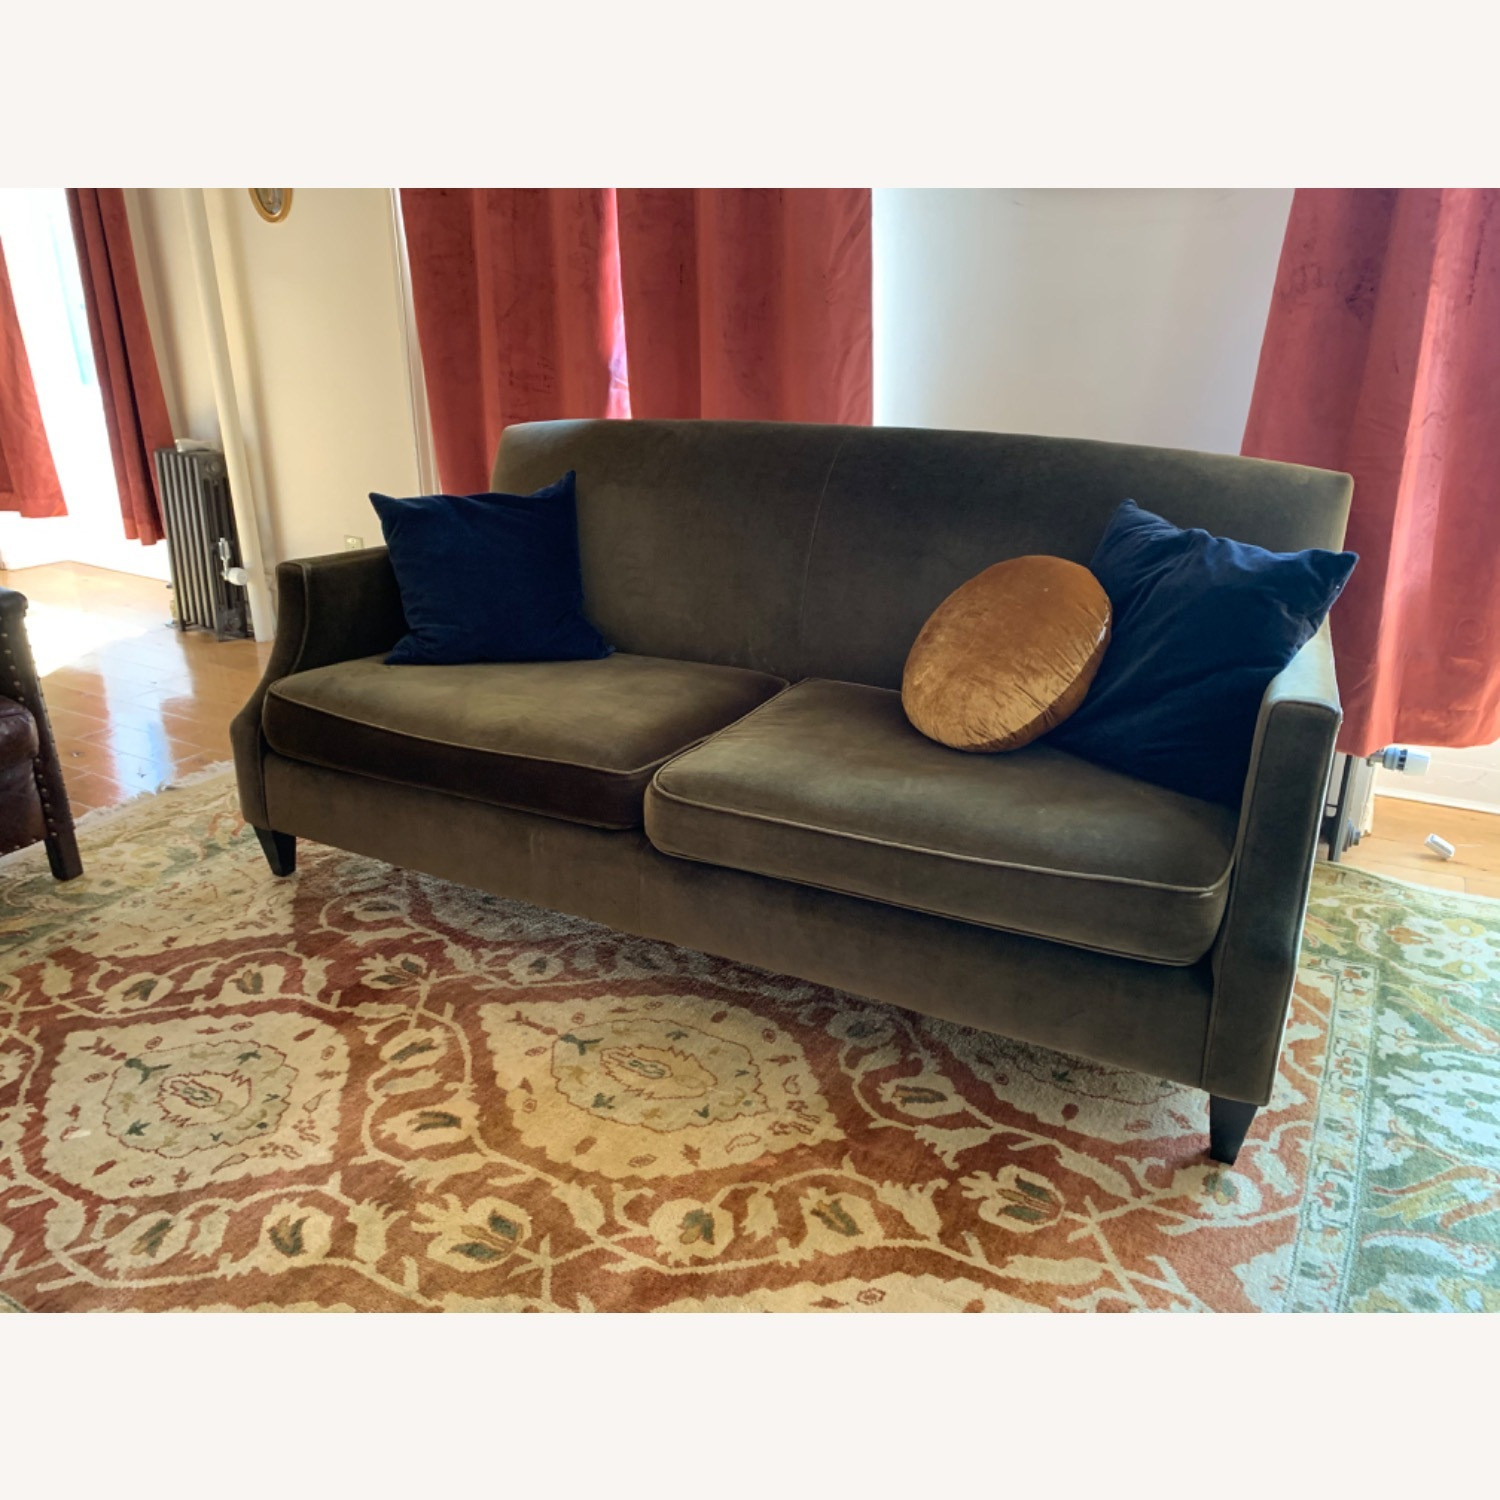 Crate & Barrel Green Velvet Couch - image-2